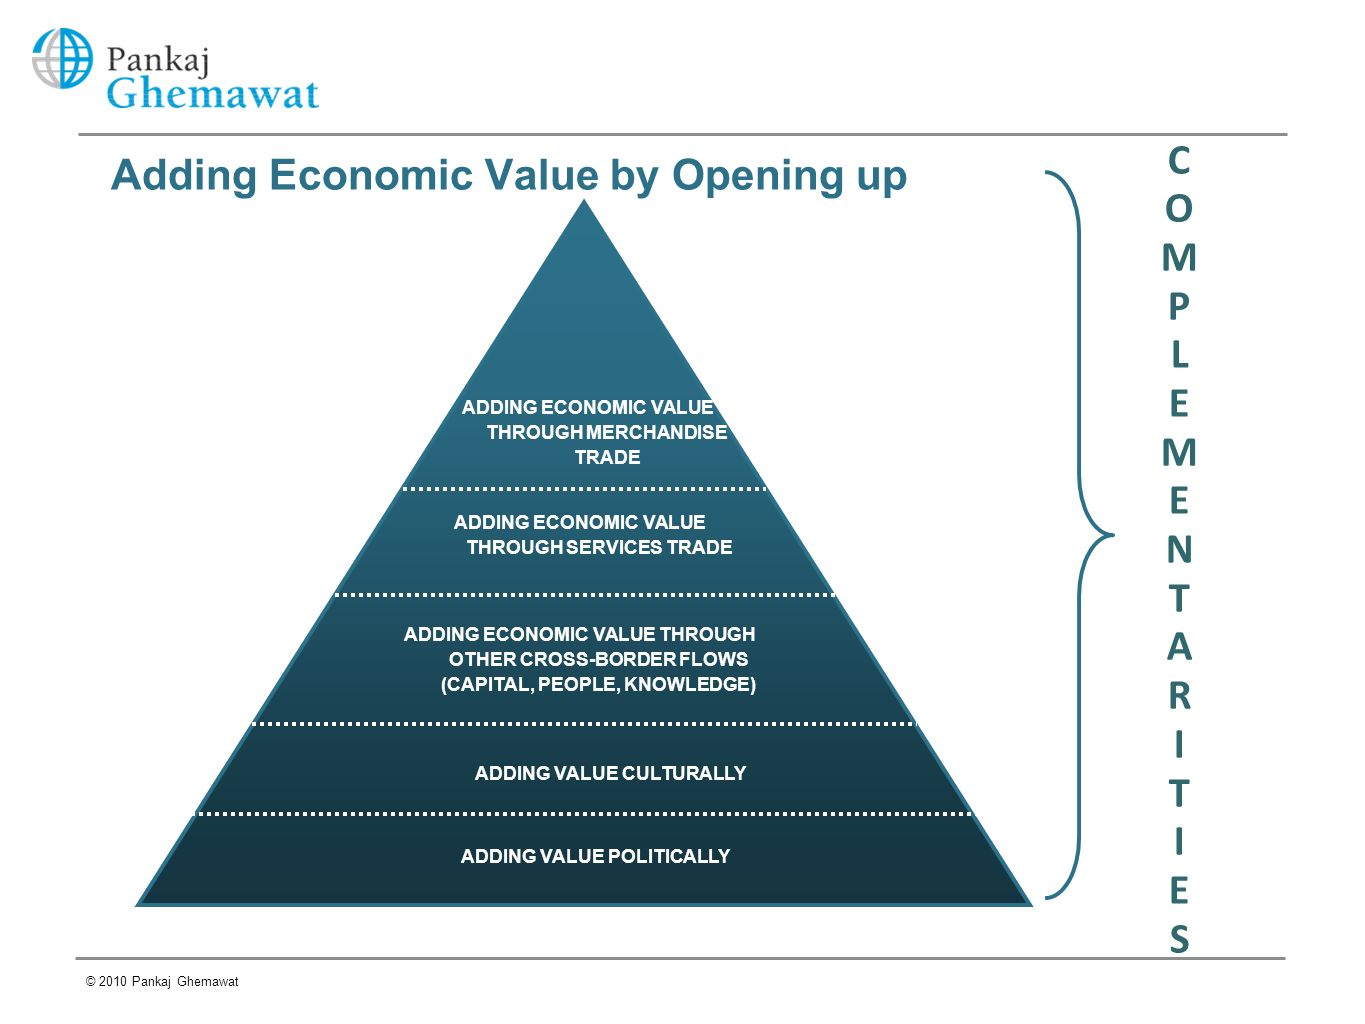 Adding Economic Value by Opening up